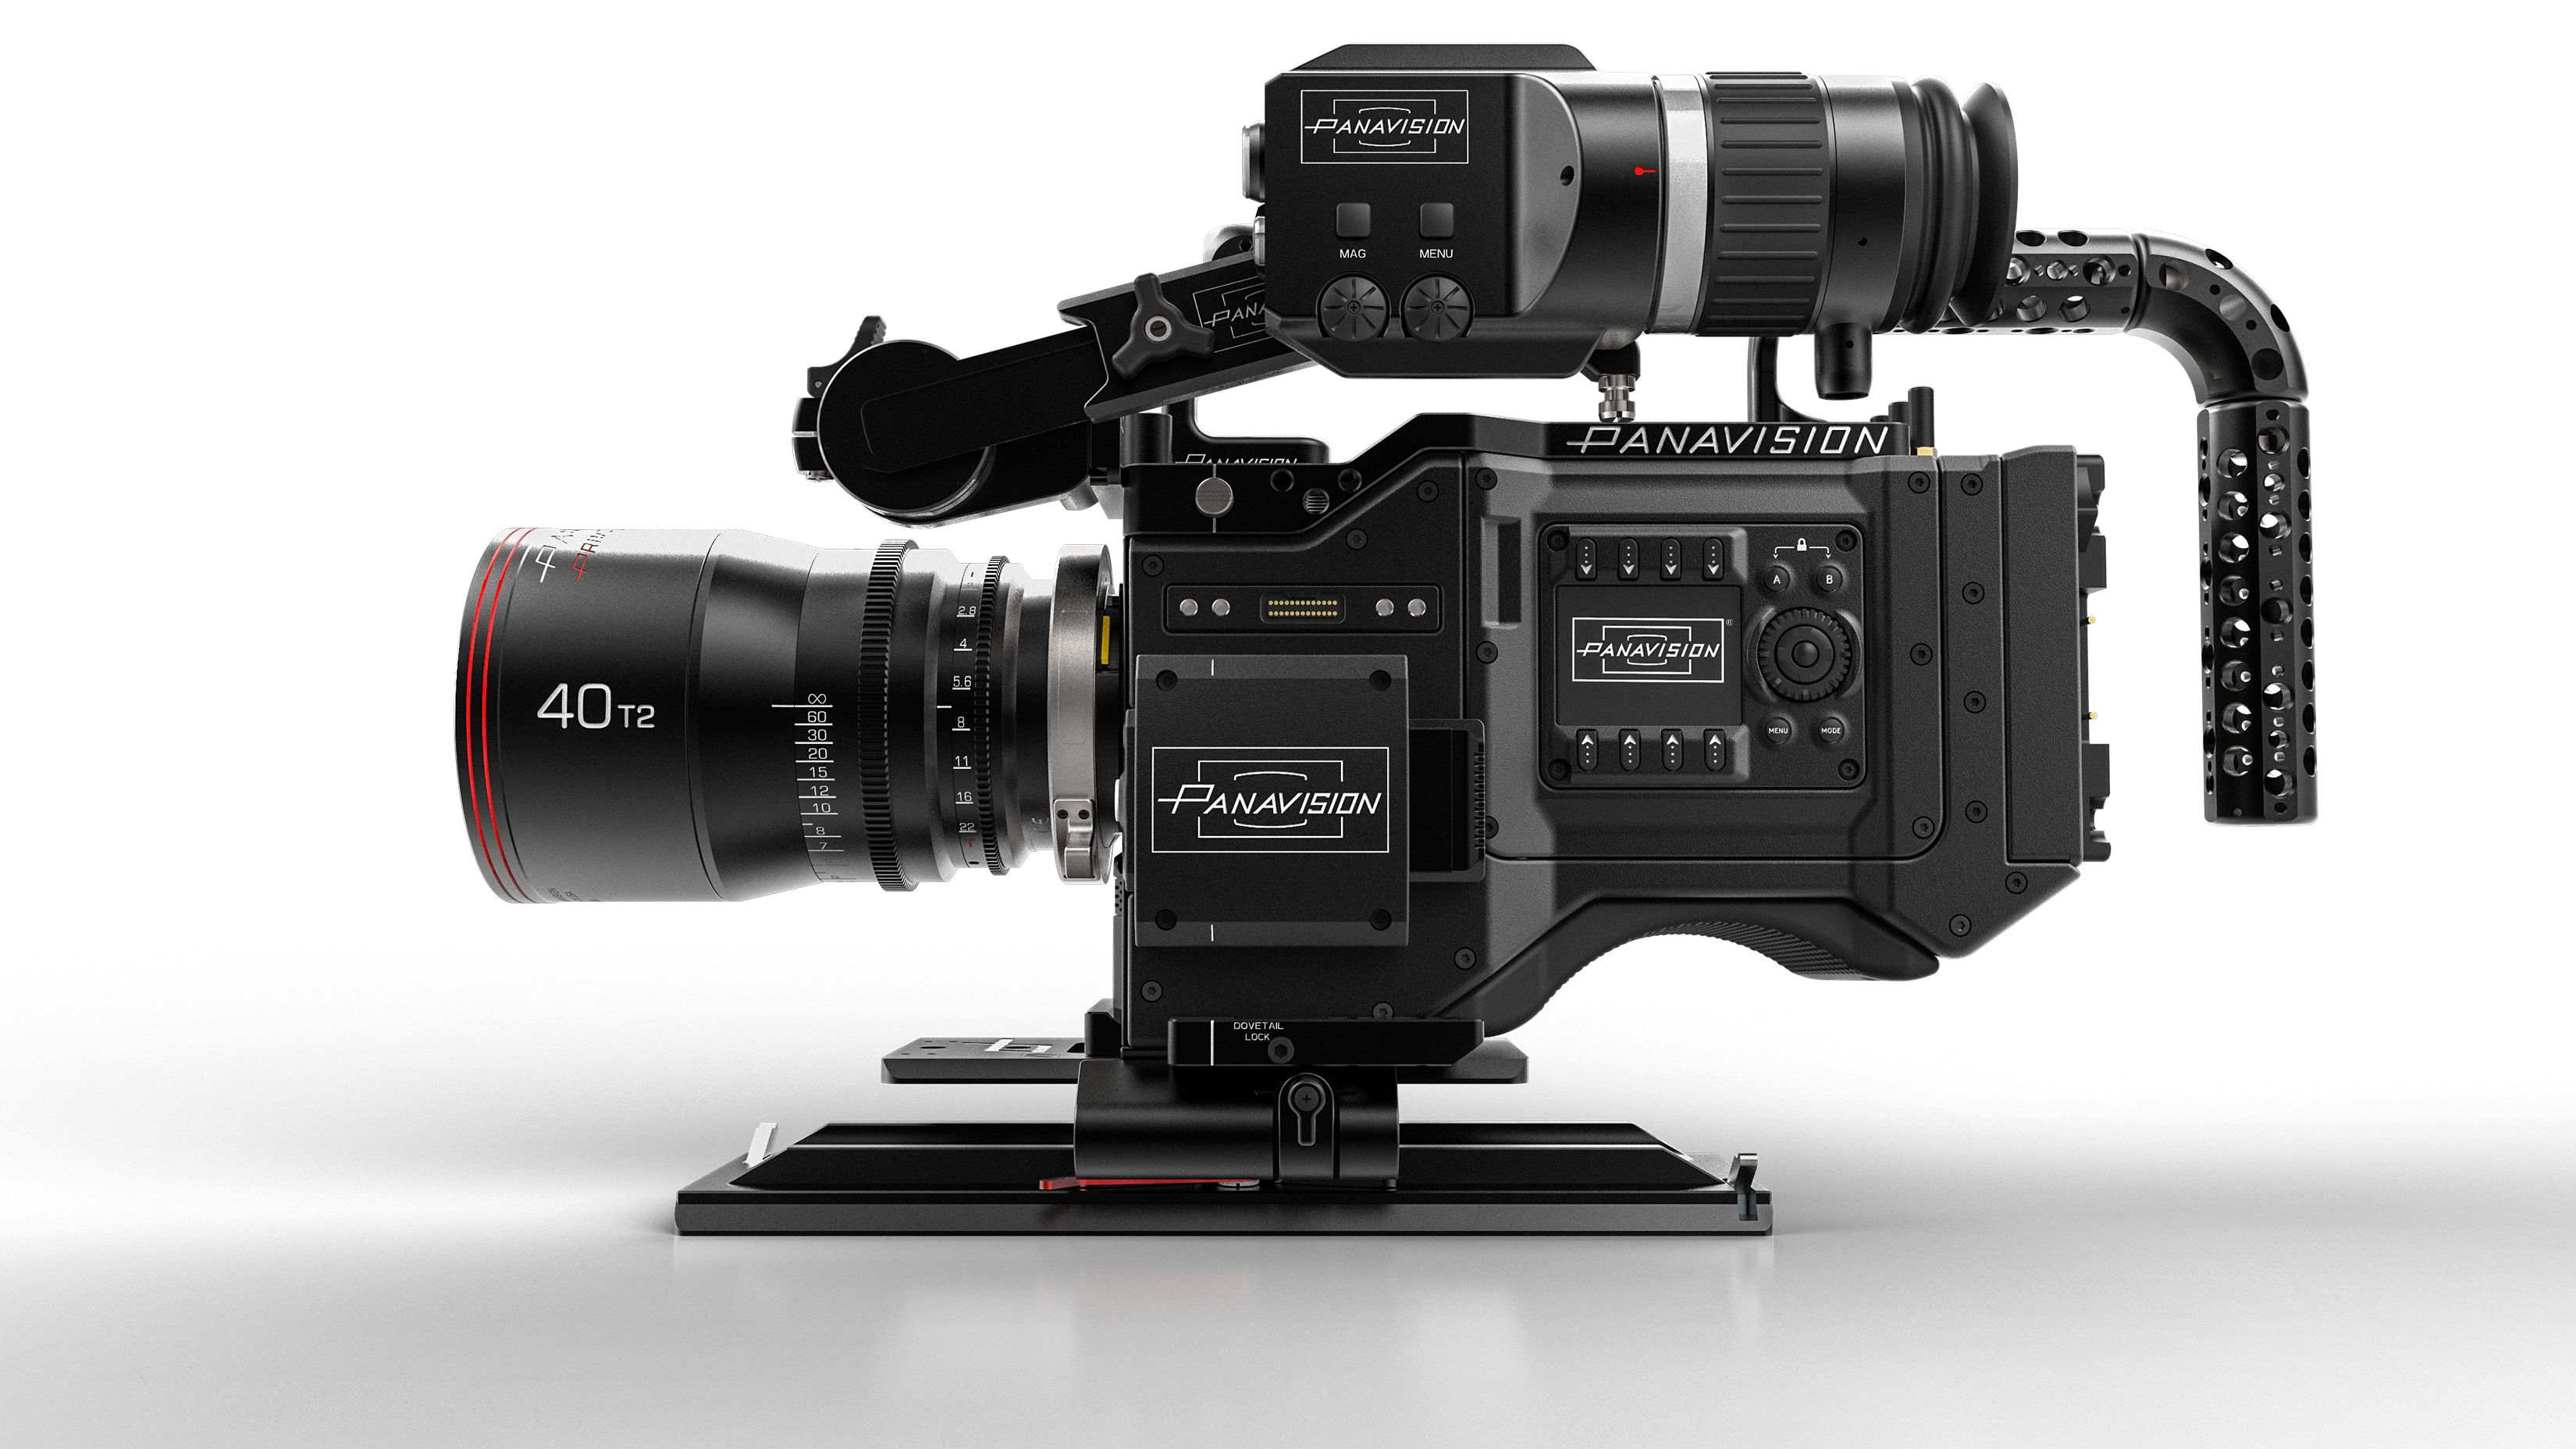 The Panavision Millennium DXL: Light Iron and RED create a winning new look for large format cinematography 11